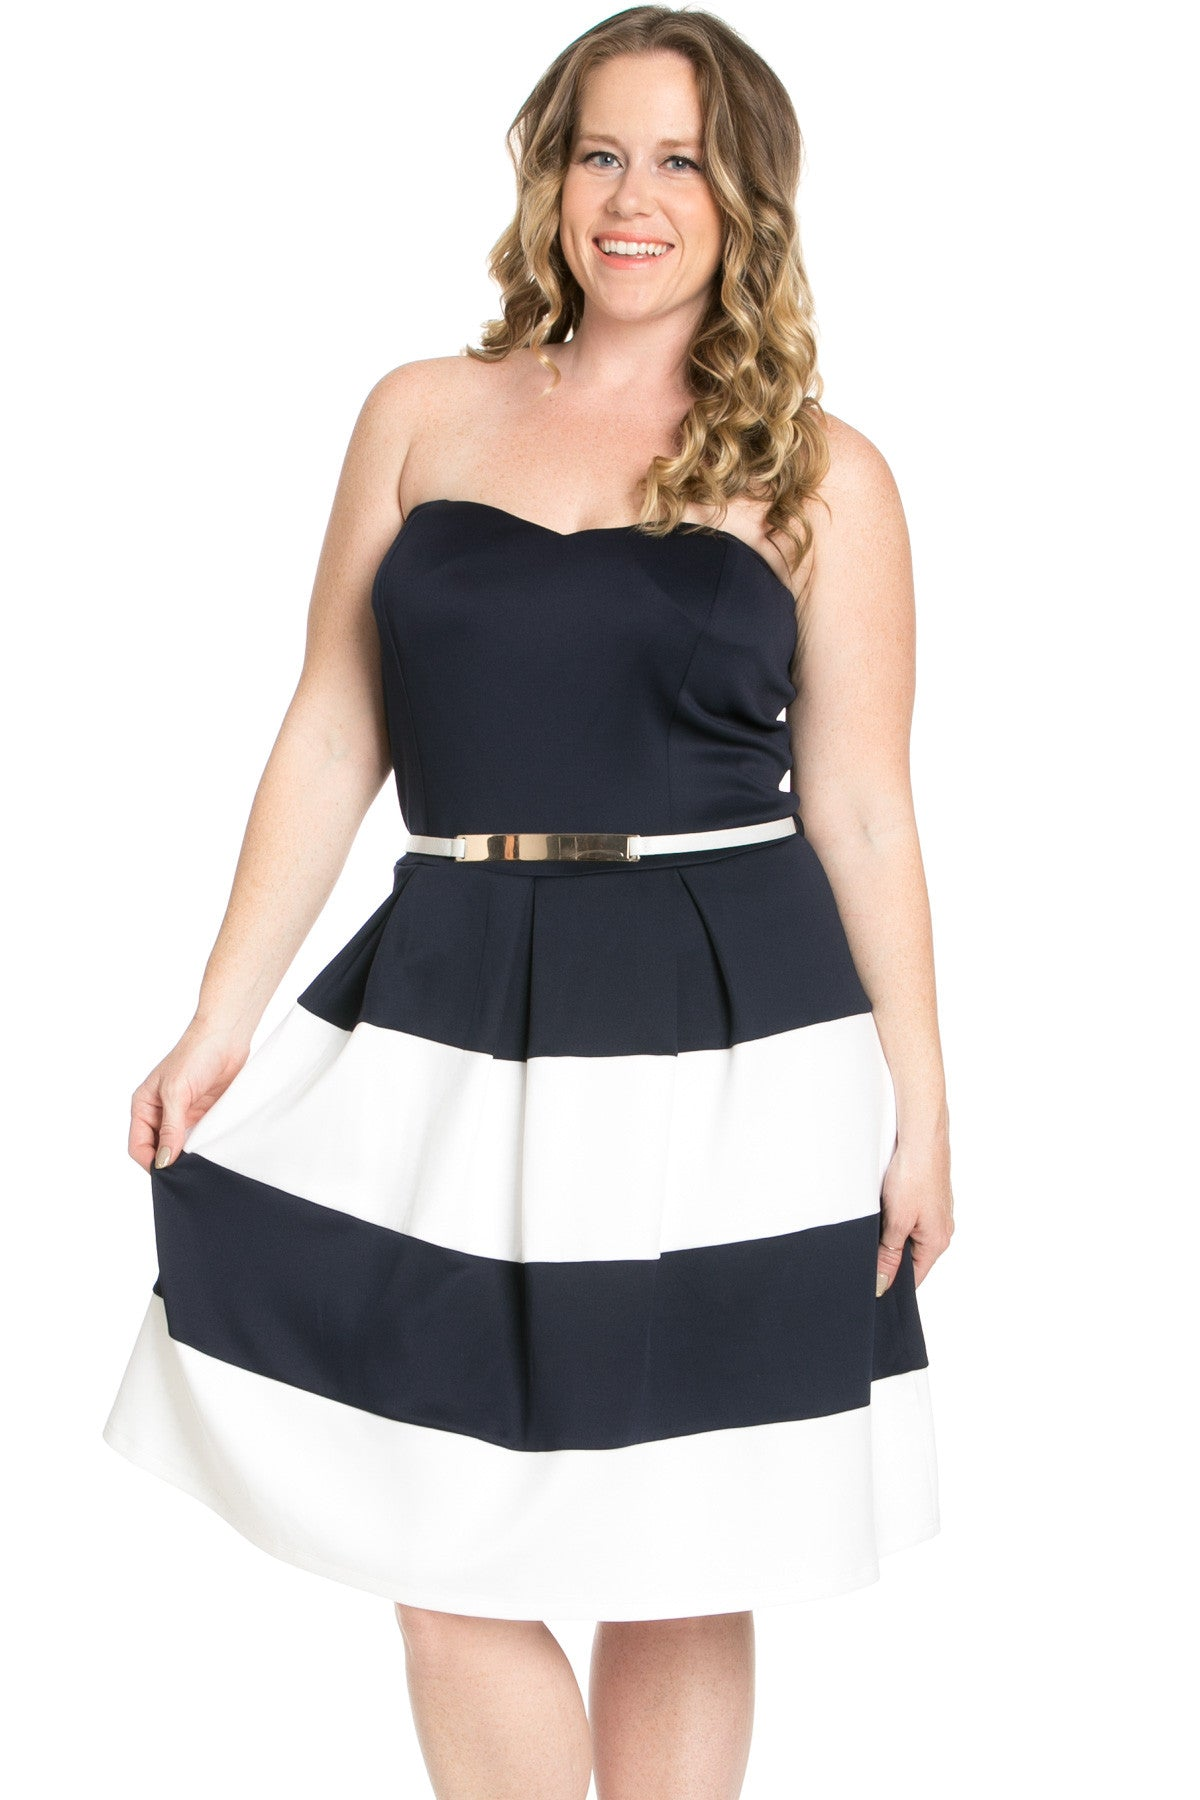 Sweetheart Color Block in Navy Tube Dress with Belt - Dresses - My Yuccie - 1